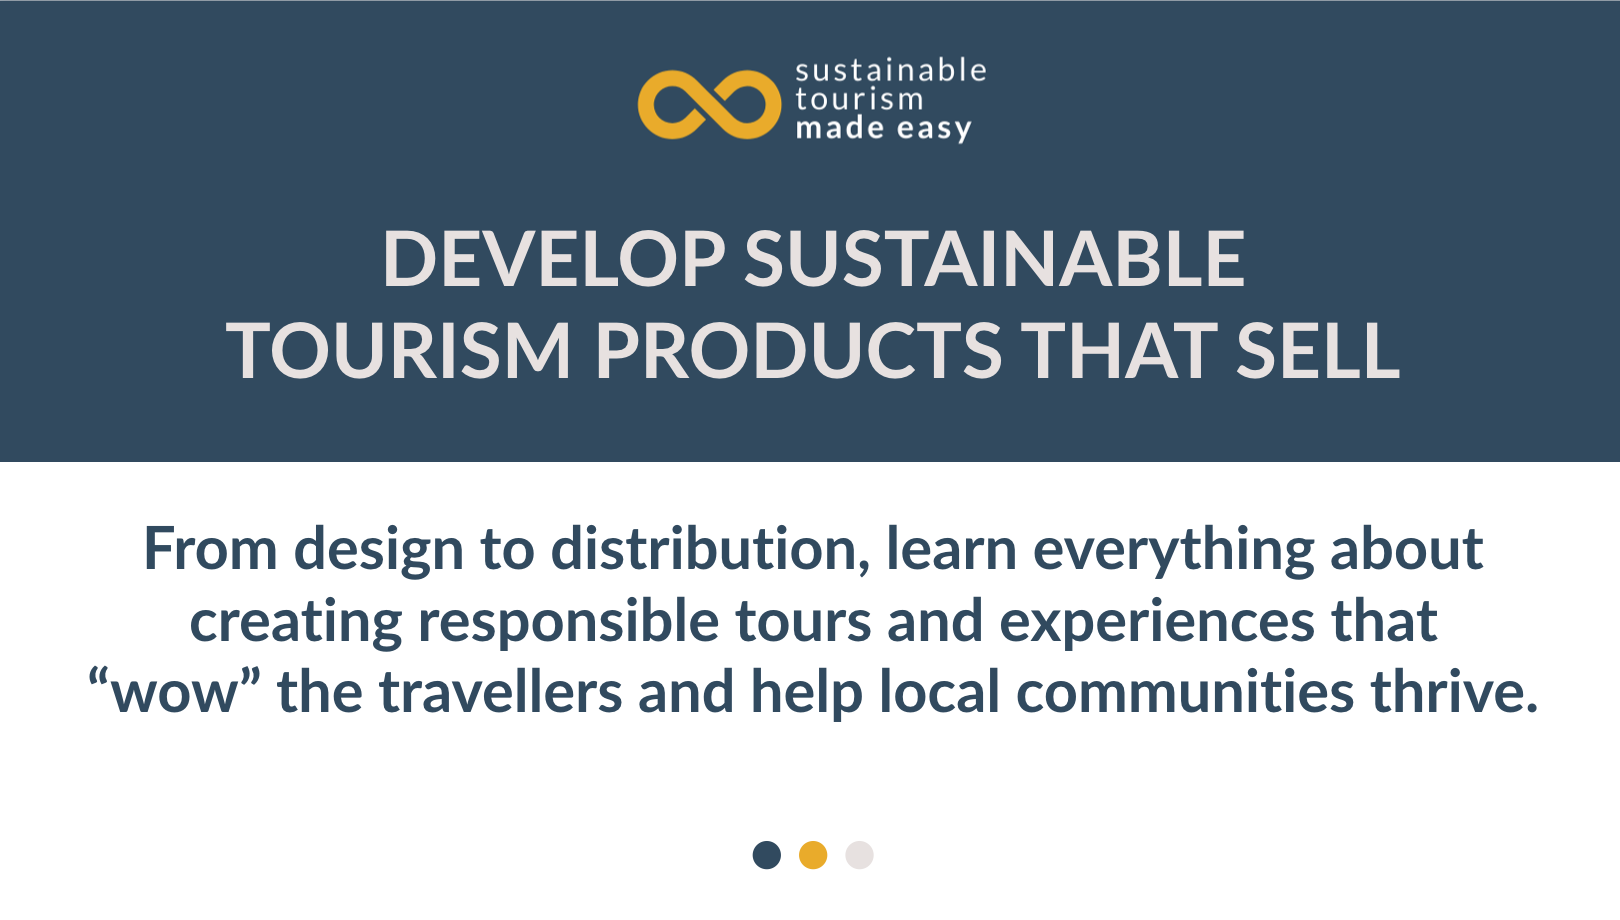 Develop sustainable tourism products